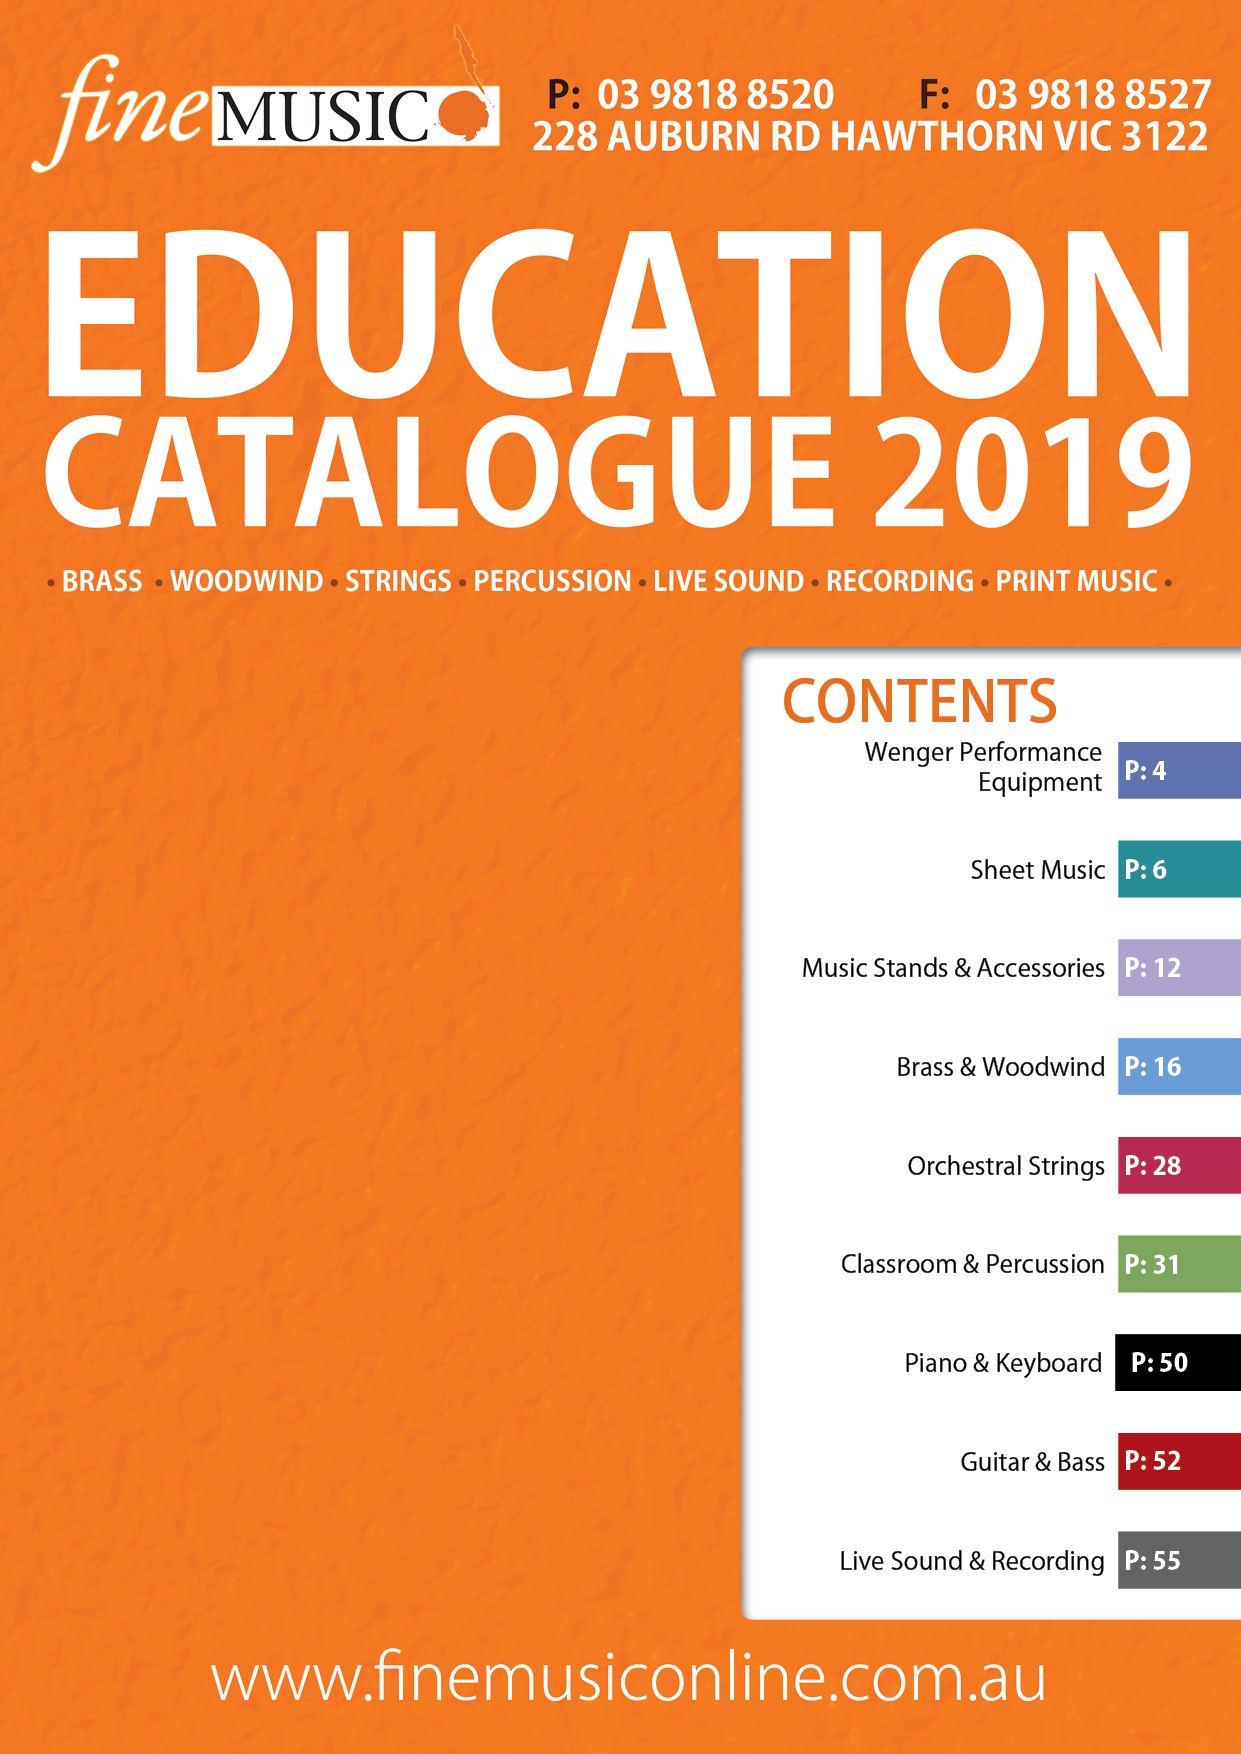 The Fine Music Education Catalogue contains the largest selection of education related products and resources in Australia.